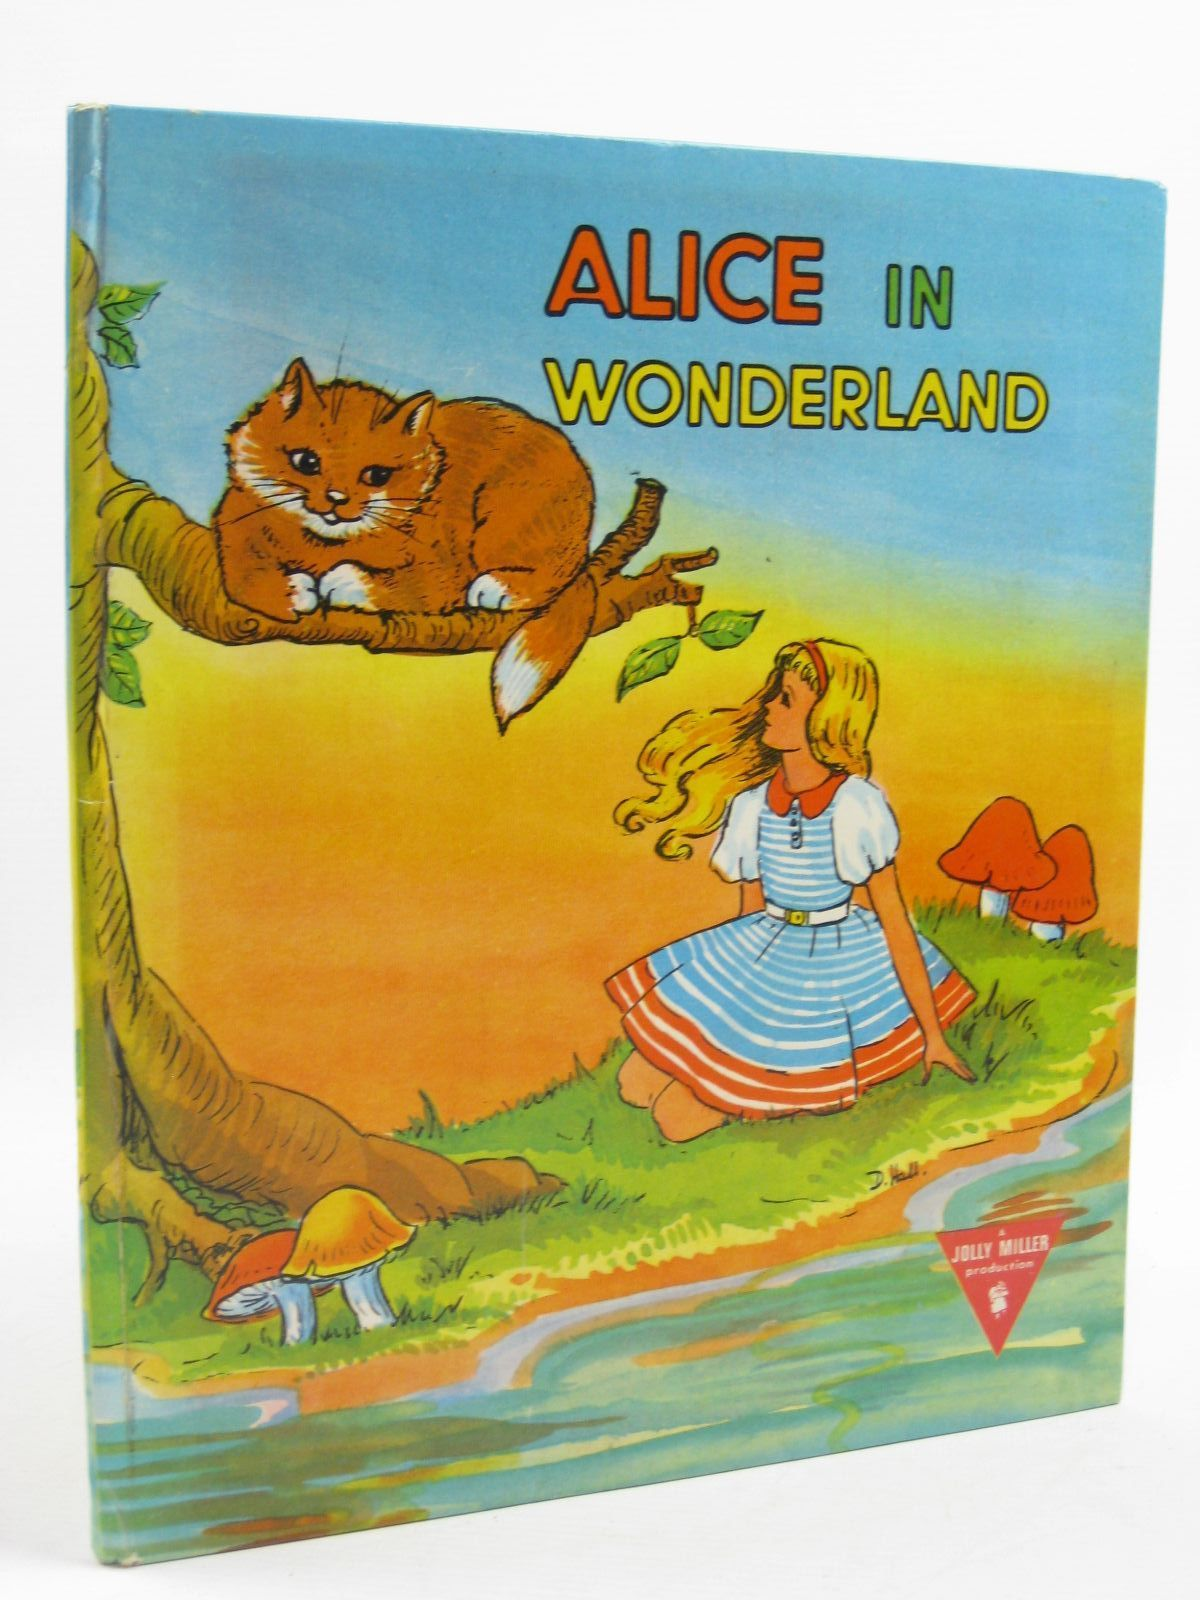 Photo of ALICE IN WONDERLAND written by Carroll, Lewis illustrated by Hall, D. published by L. Miller & Co. (Hackney) Ltd. (STOCK CODE: 1507483)  for sale by Stella & Rose's Books